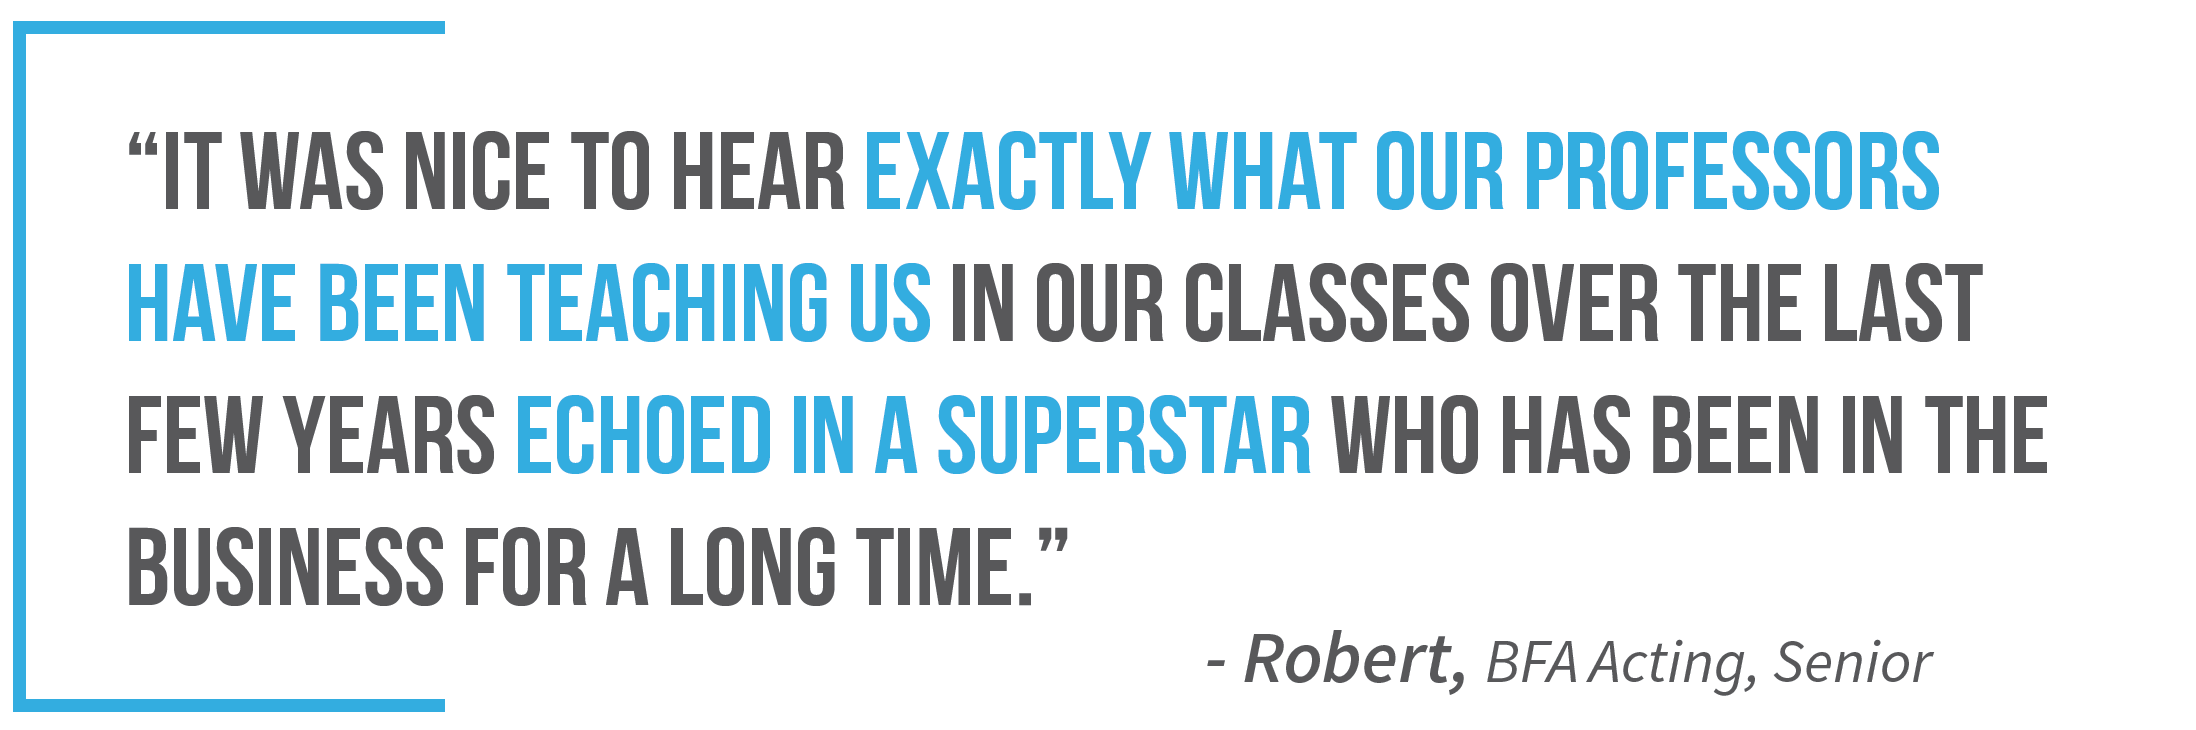 """It was nice to hear exactly what our professors have been teaching us in our classes over the last few years echoed in a superstar who has been in the business for a long time."" —Robert, B F A Acting, Senior"